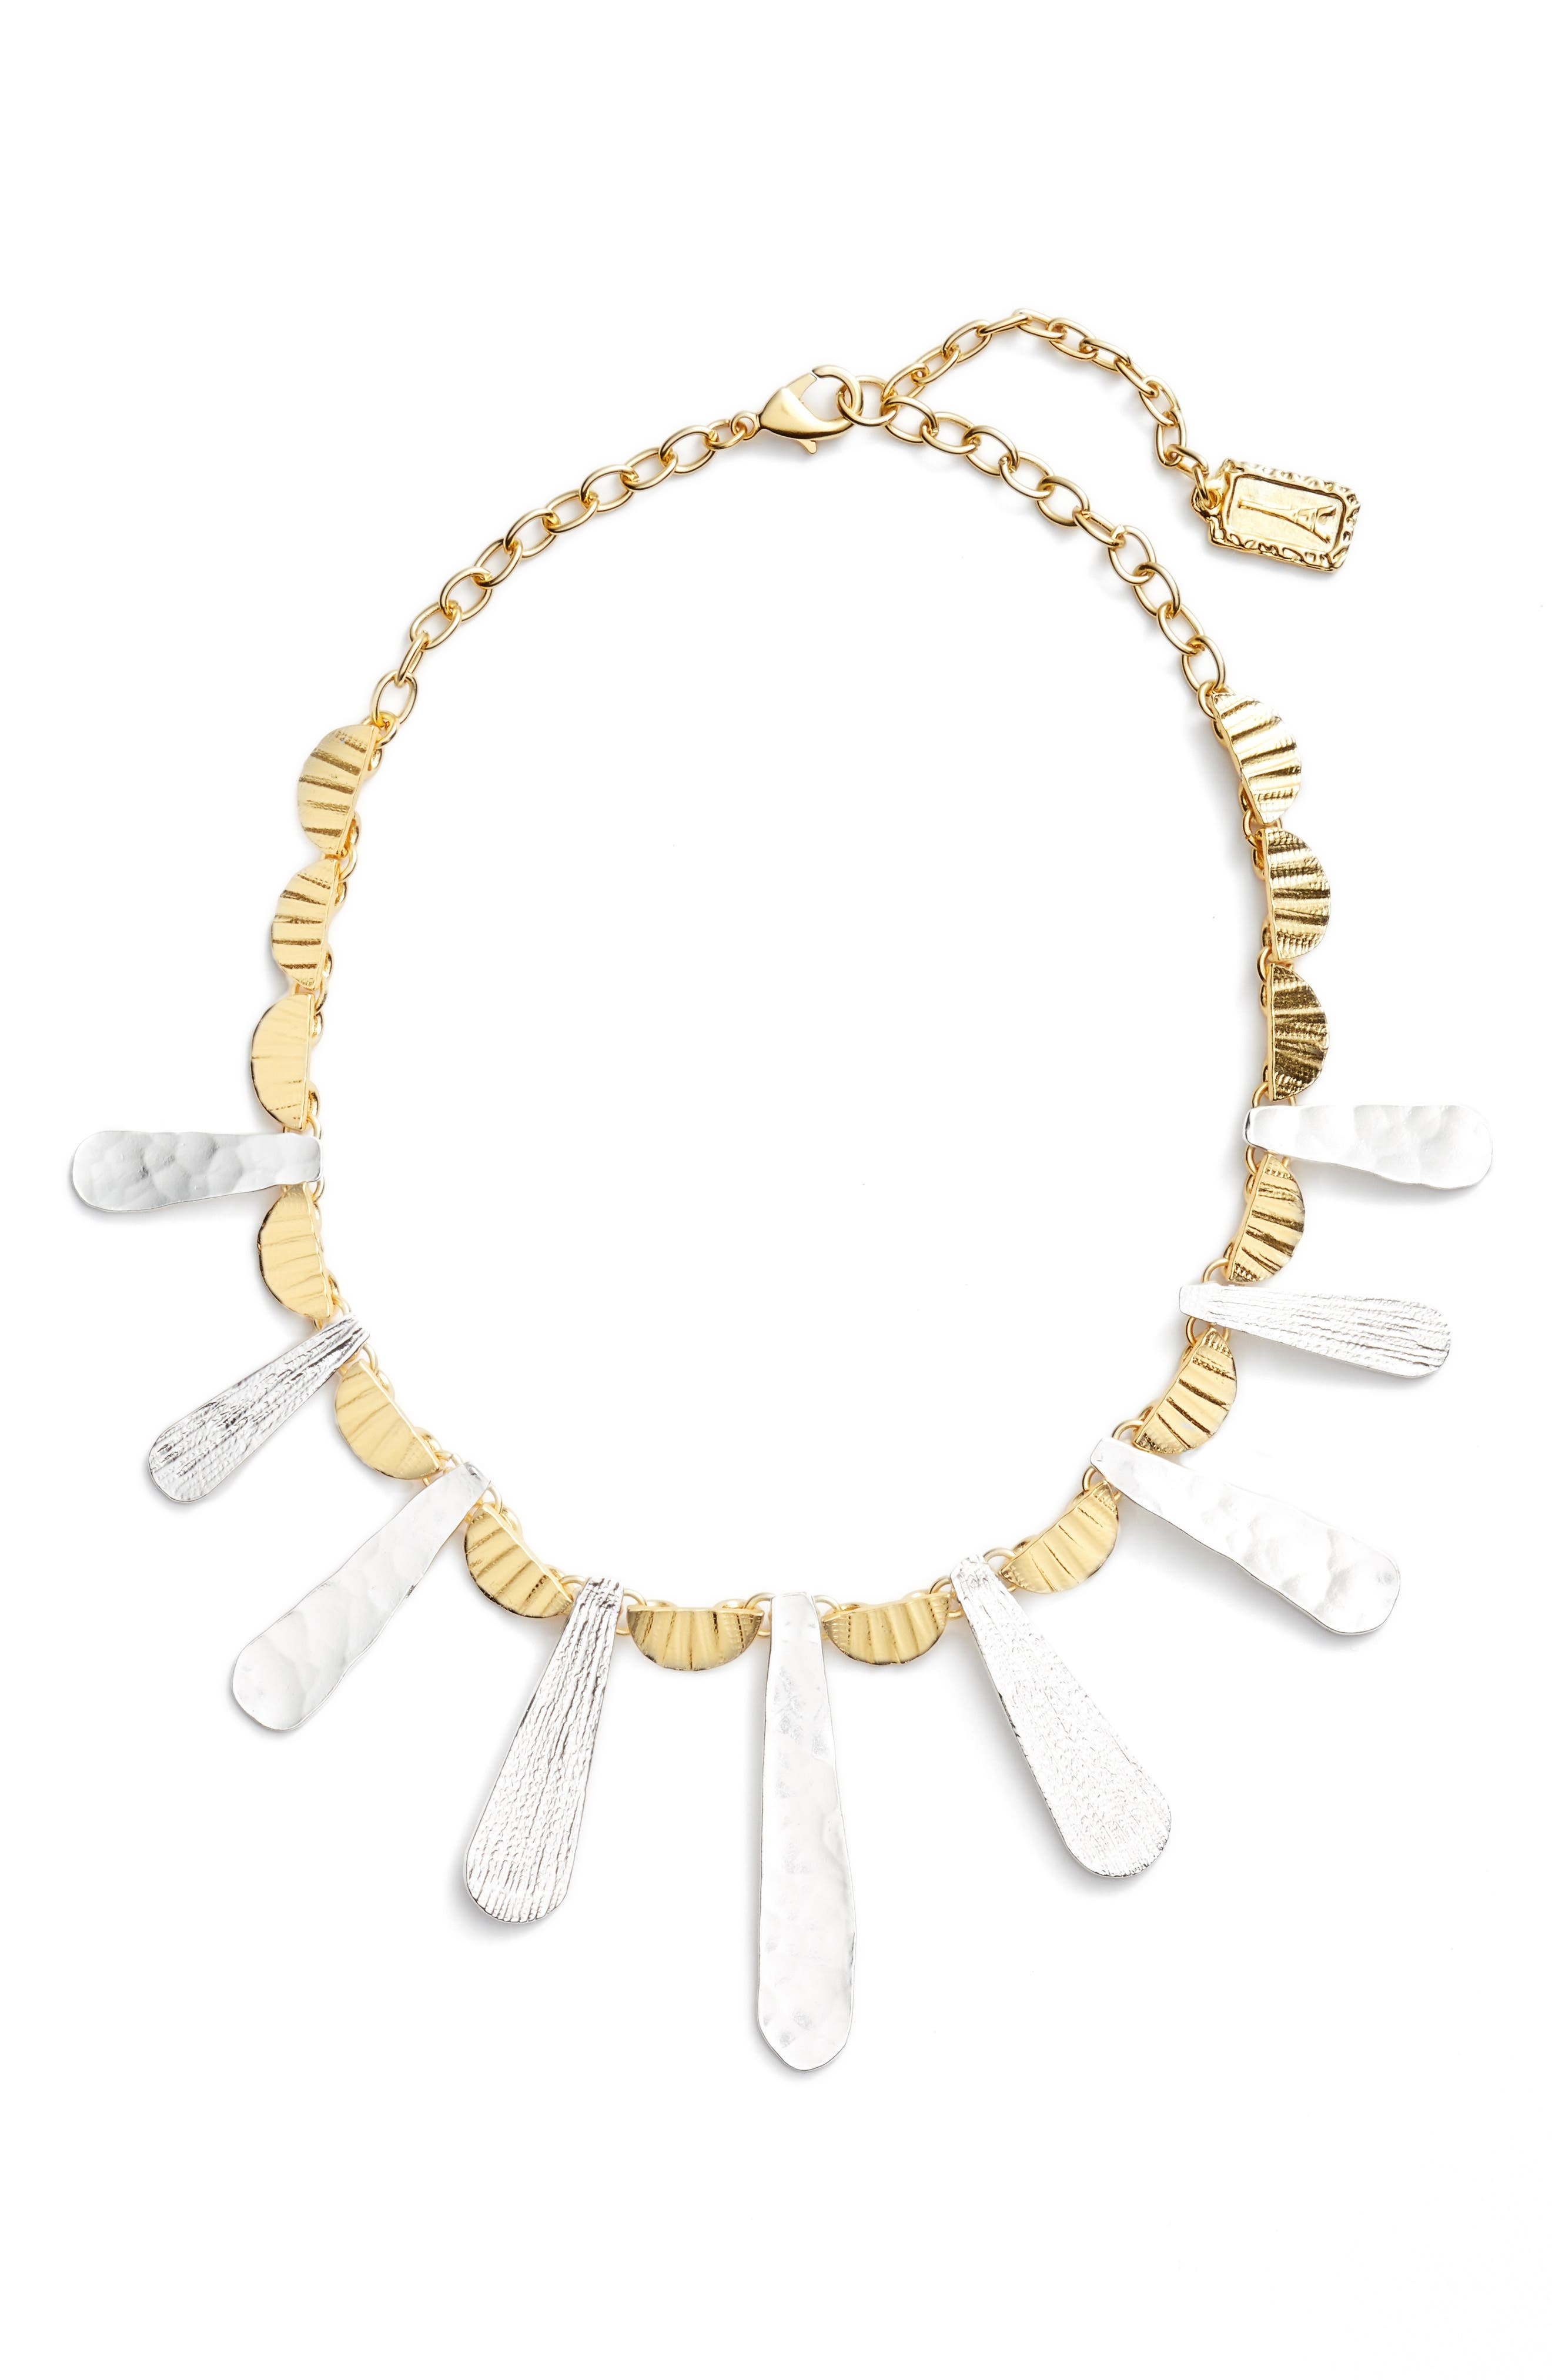 Hammered Collar Necklace,                         Main,                         color, Gold/Silver Mix